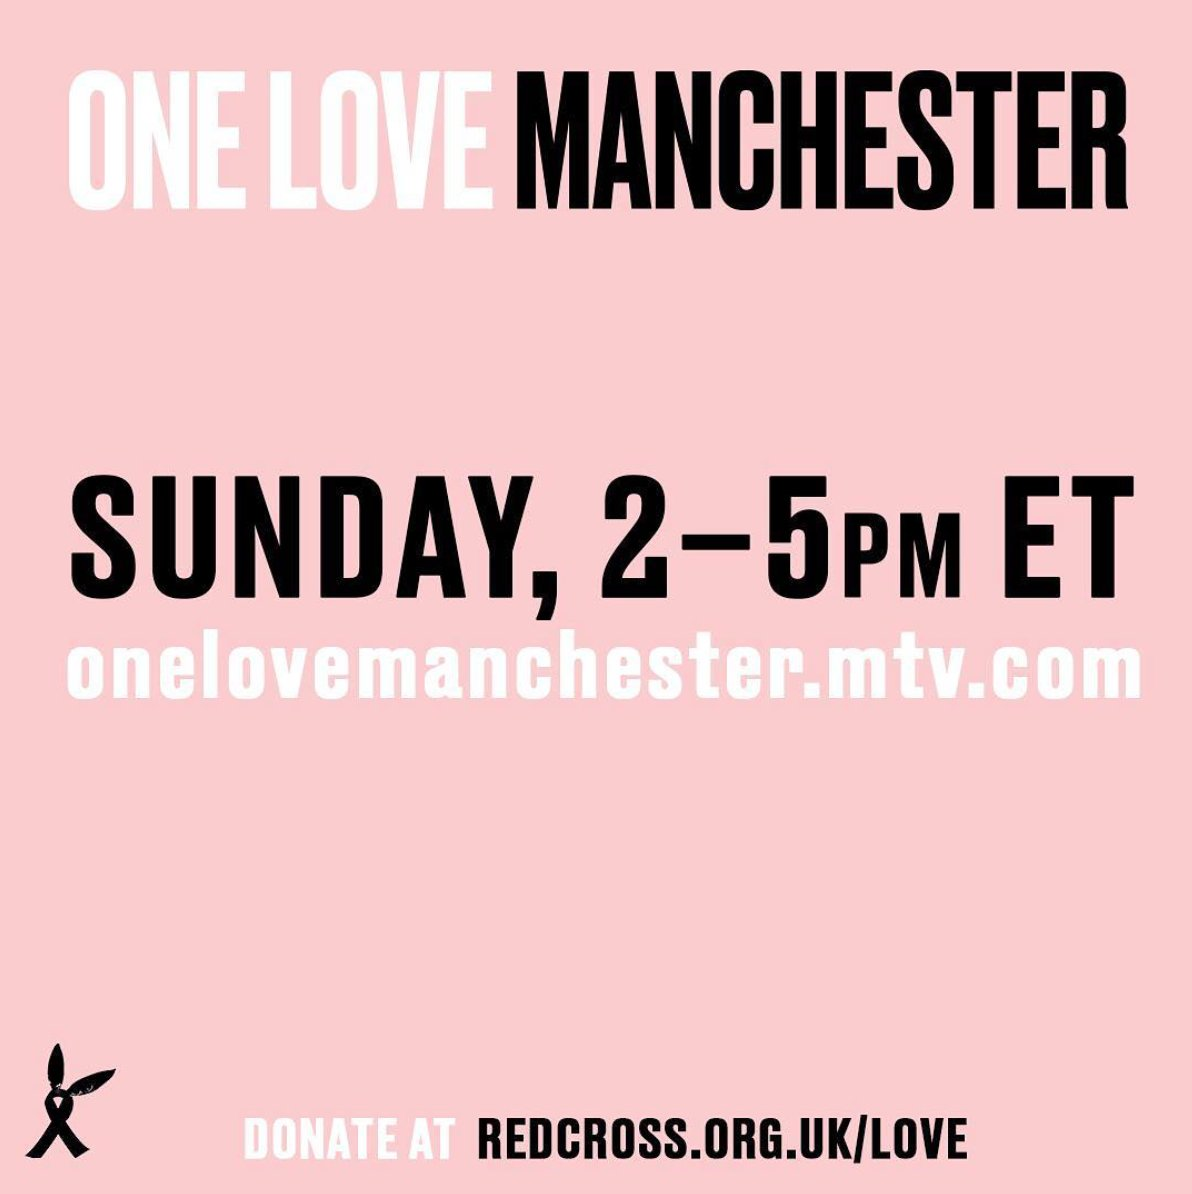 Watch #OneLoveManchester with us this Sunday at 2p EST at https://t.co/lYZwLFGc2i 💜 To make donations please visit https://t.co/ZgAn4DxyLx